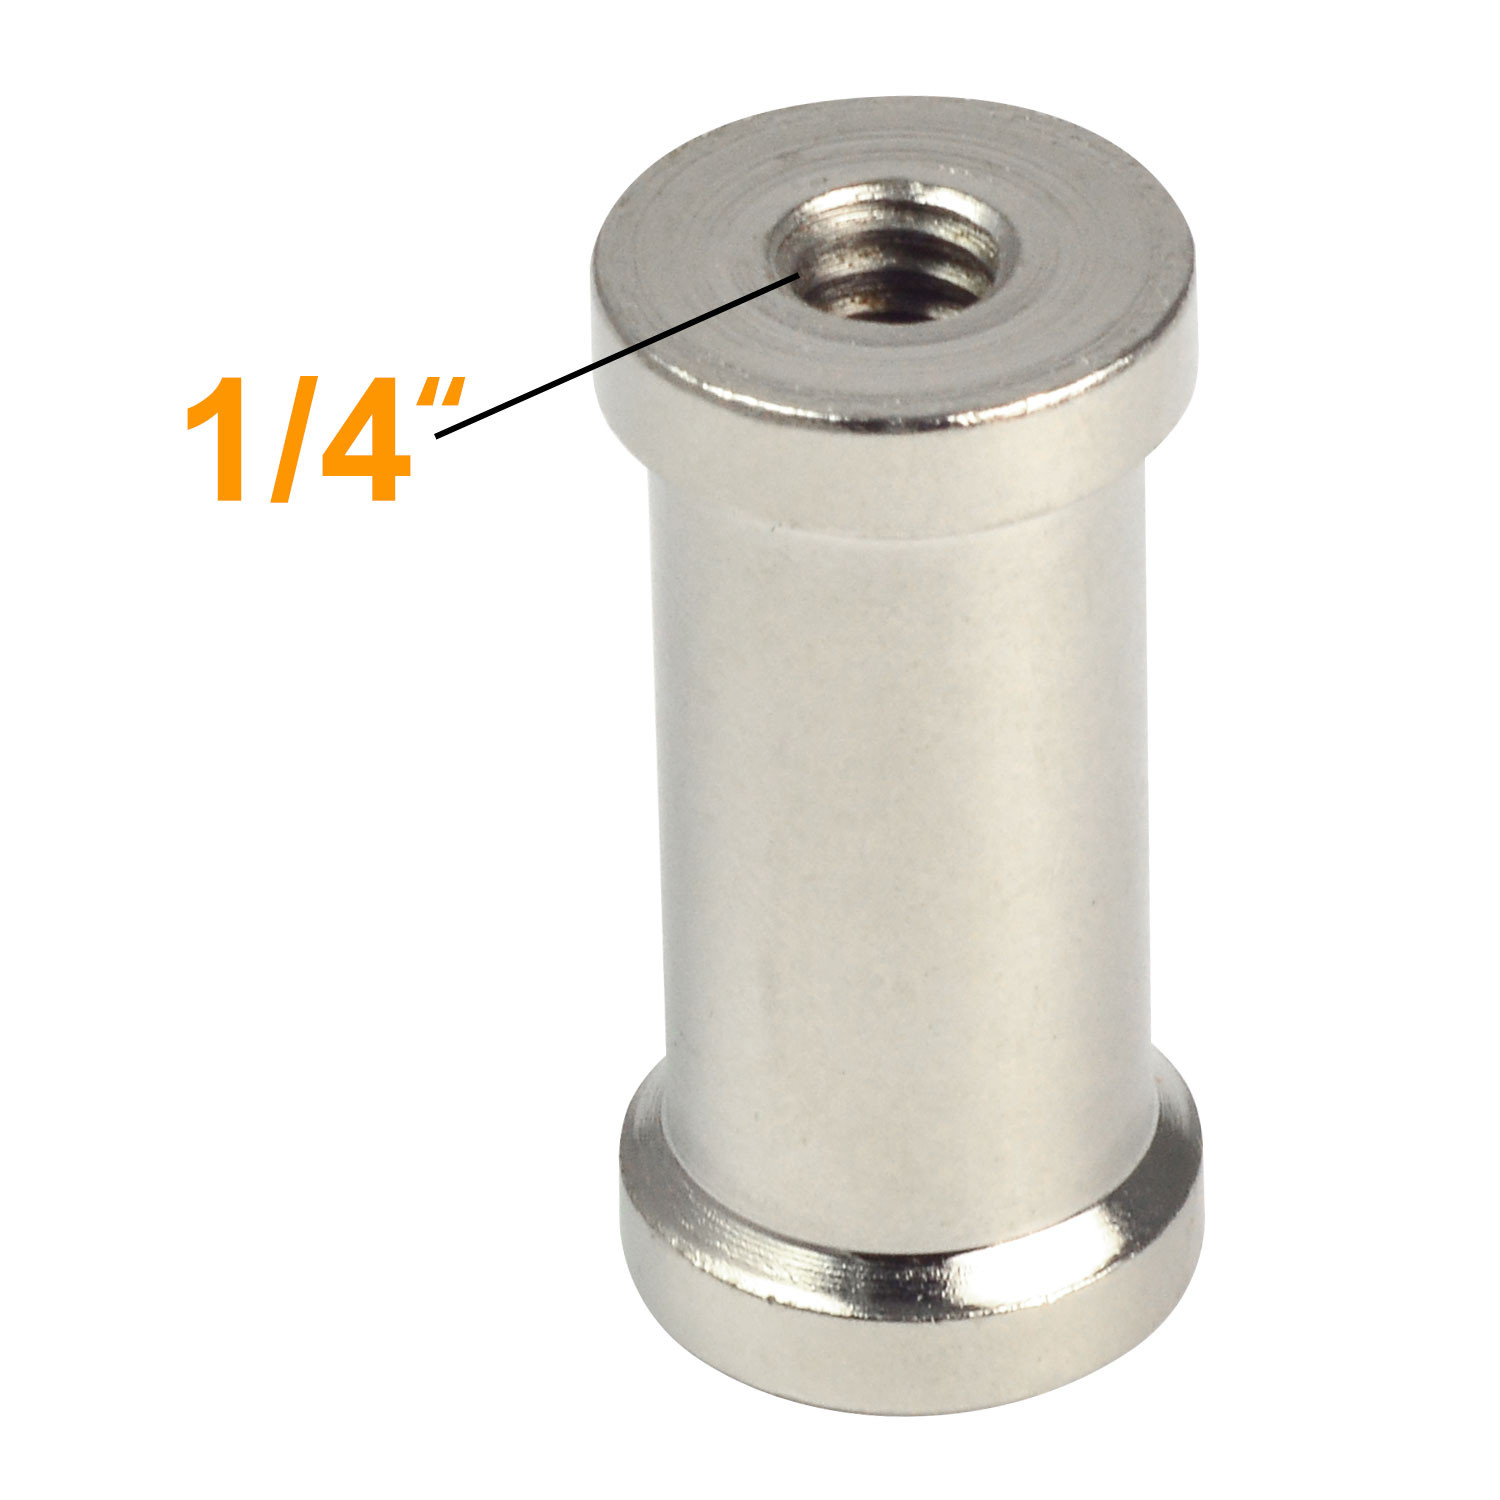 """Stainless Steel 1/4"""" to 3/8"""" Female Threaded screw Tripod Screw Spigot Stud Adapter to Light Stand for Bracket - LED Lights, Photography Accessories ..."""